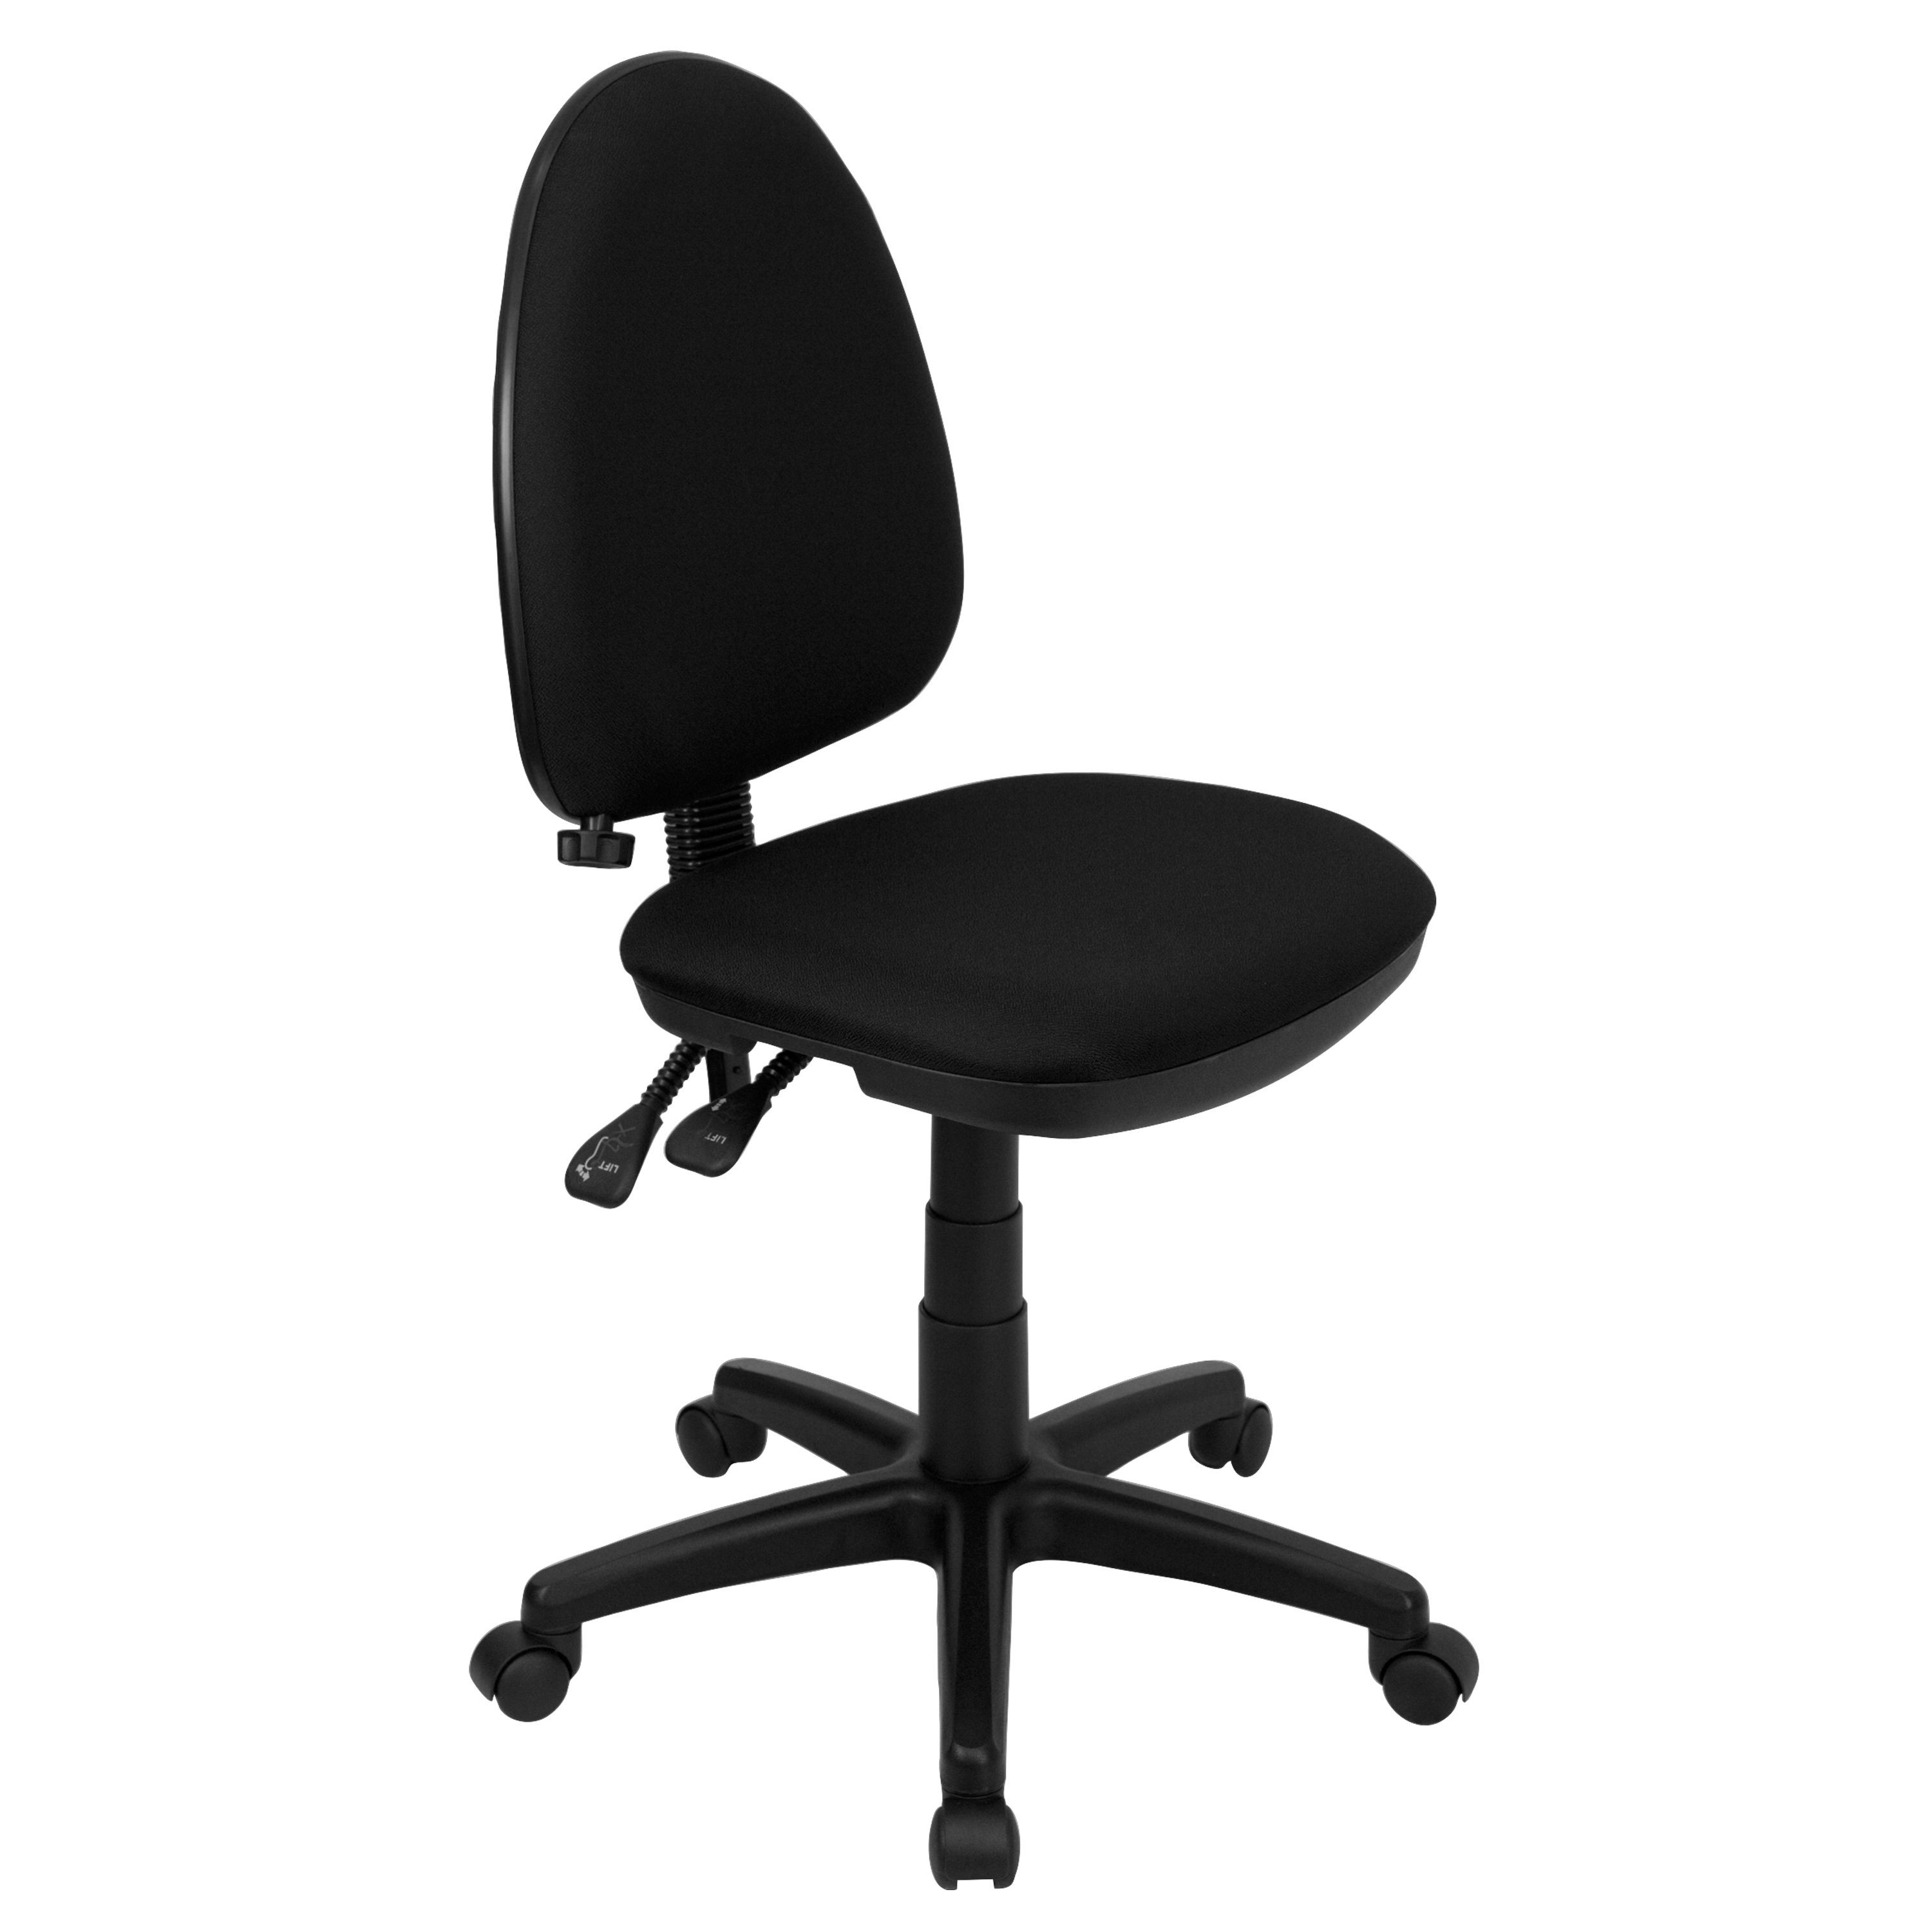 ergonomic chair request letter wing back dining chairs flash furniture wl a654mg bk gg black fabric multi